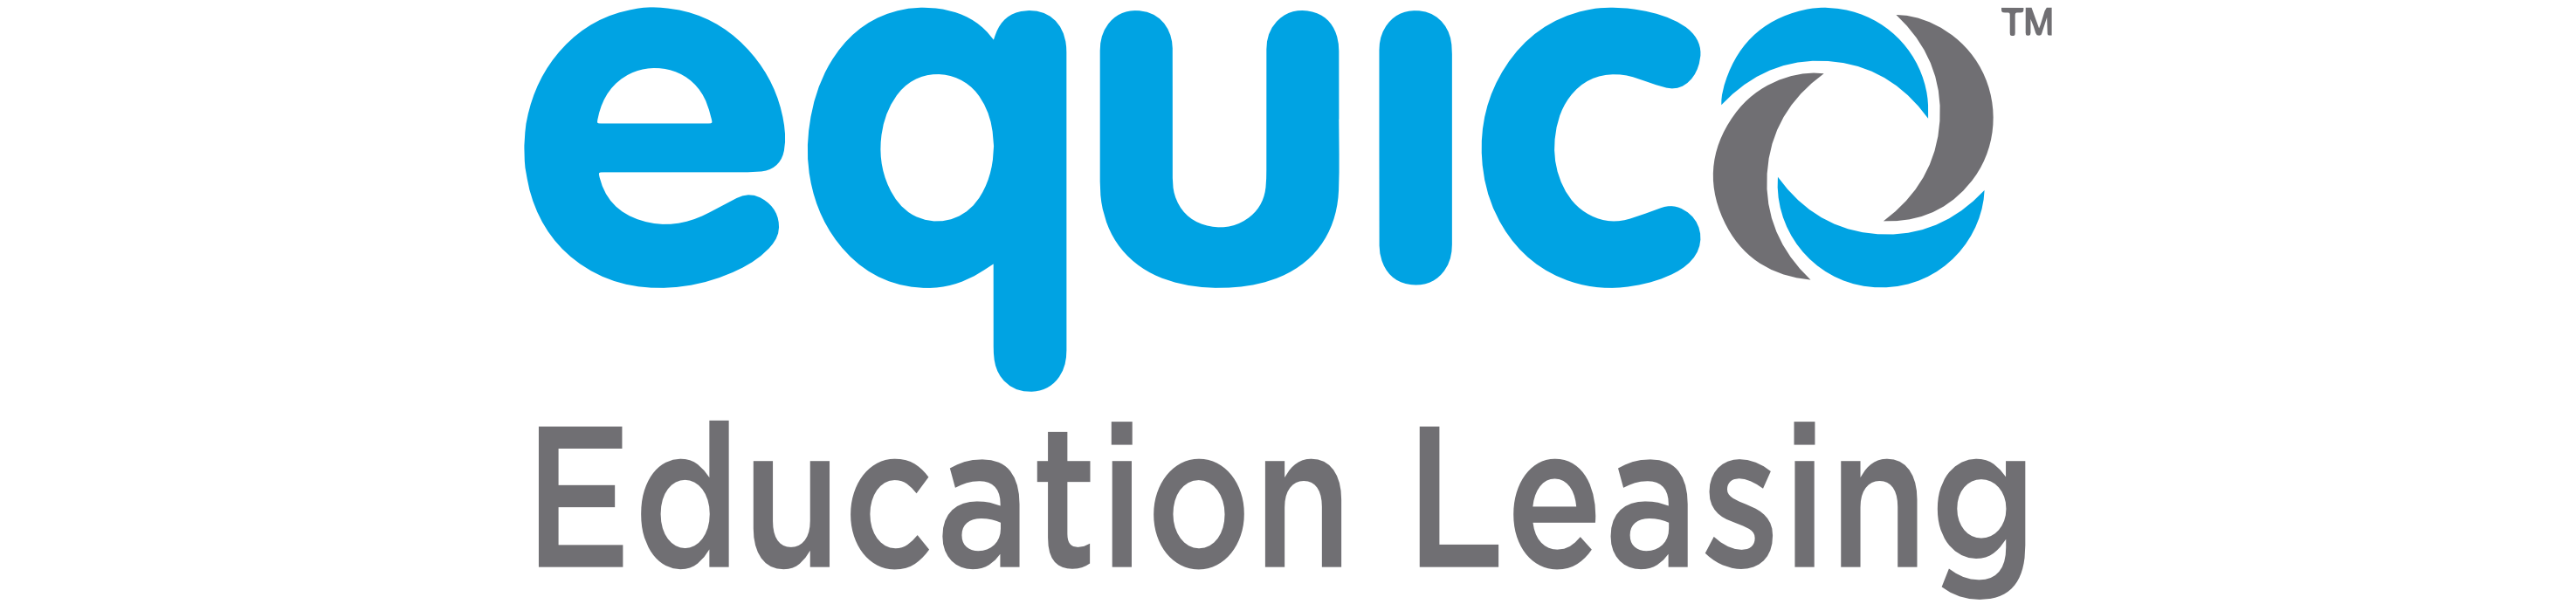 Equico Education Leasing